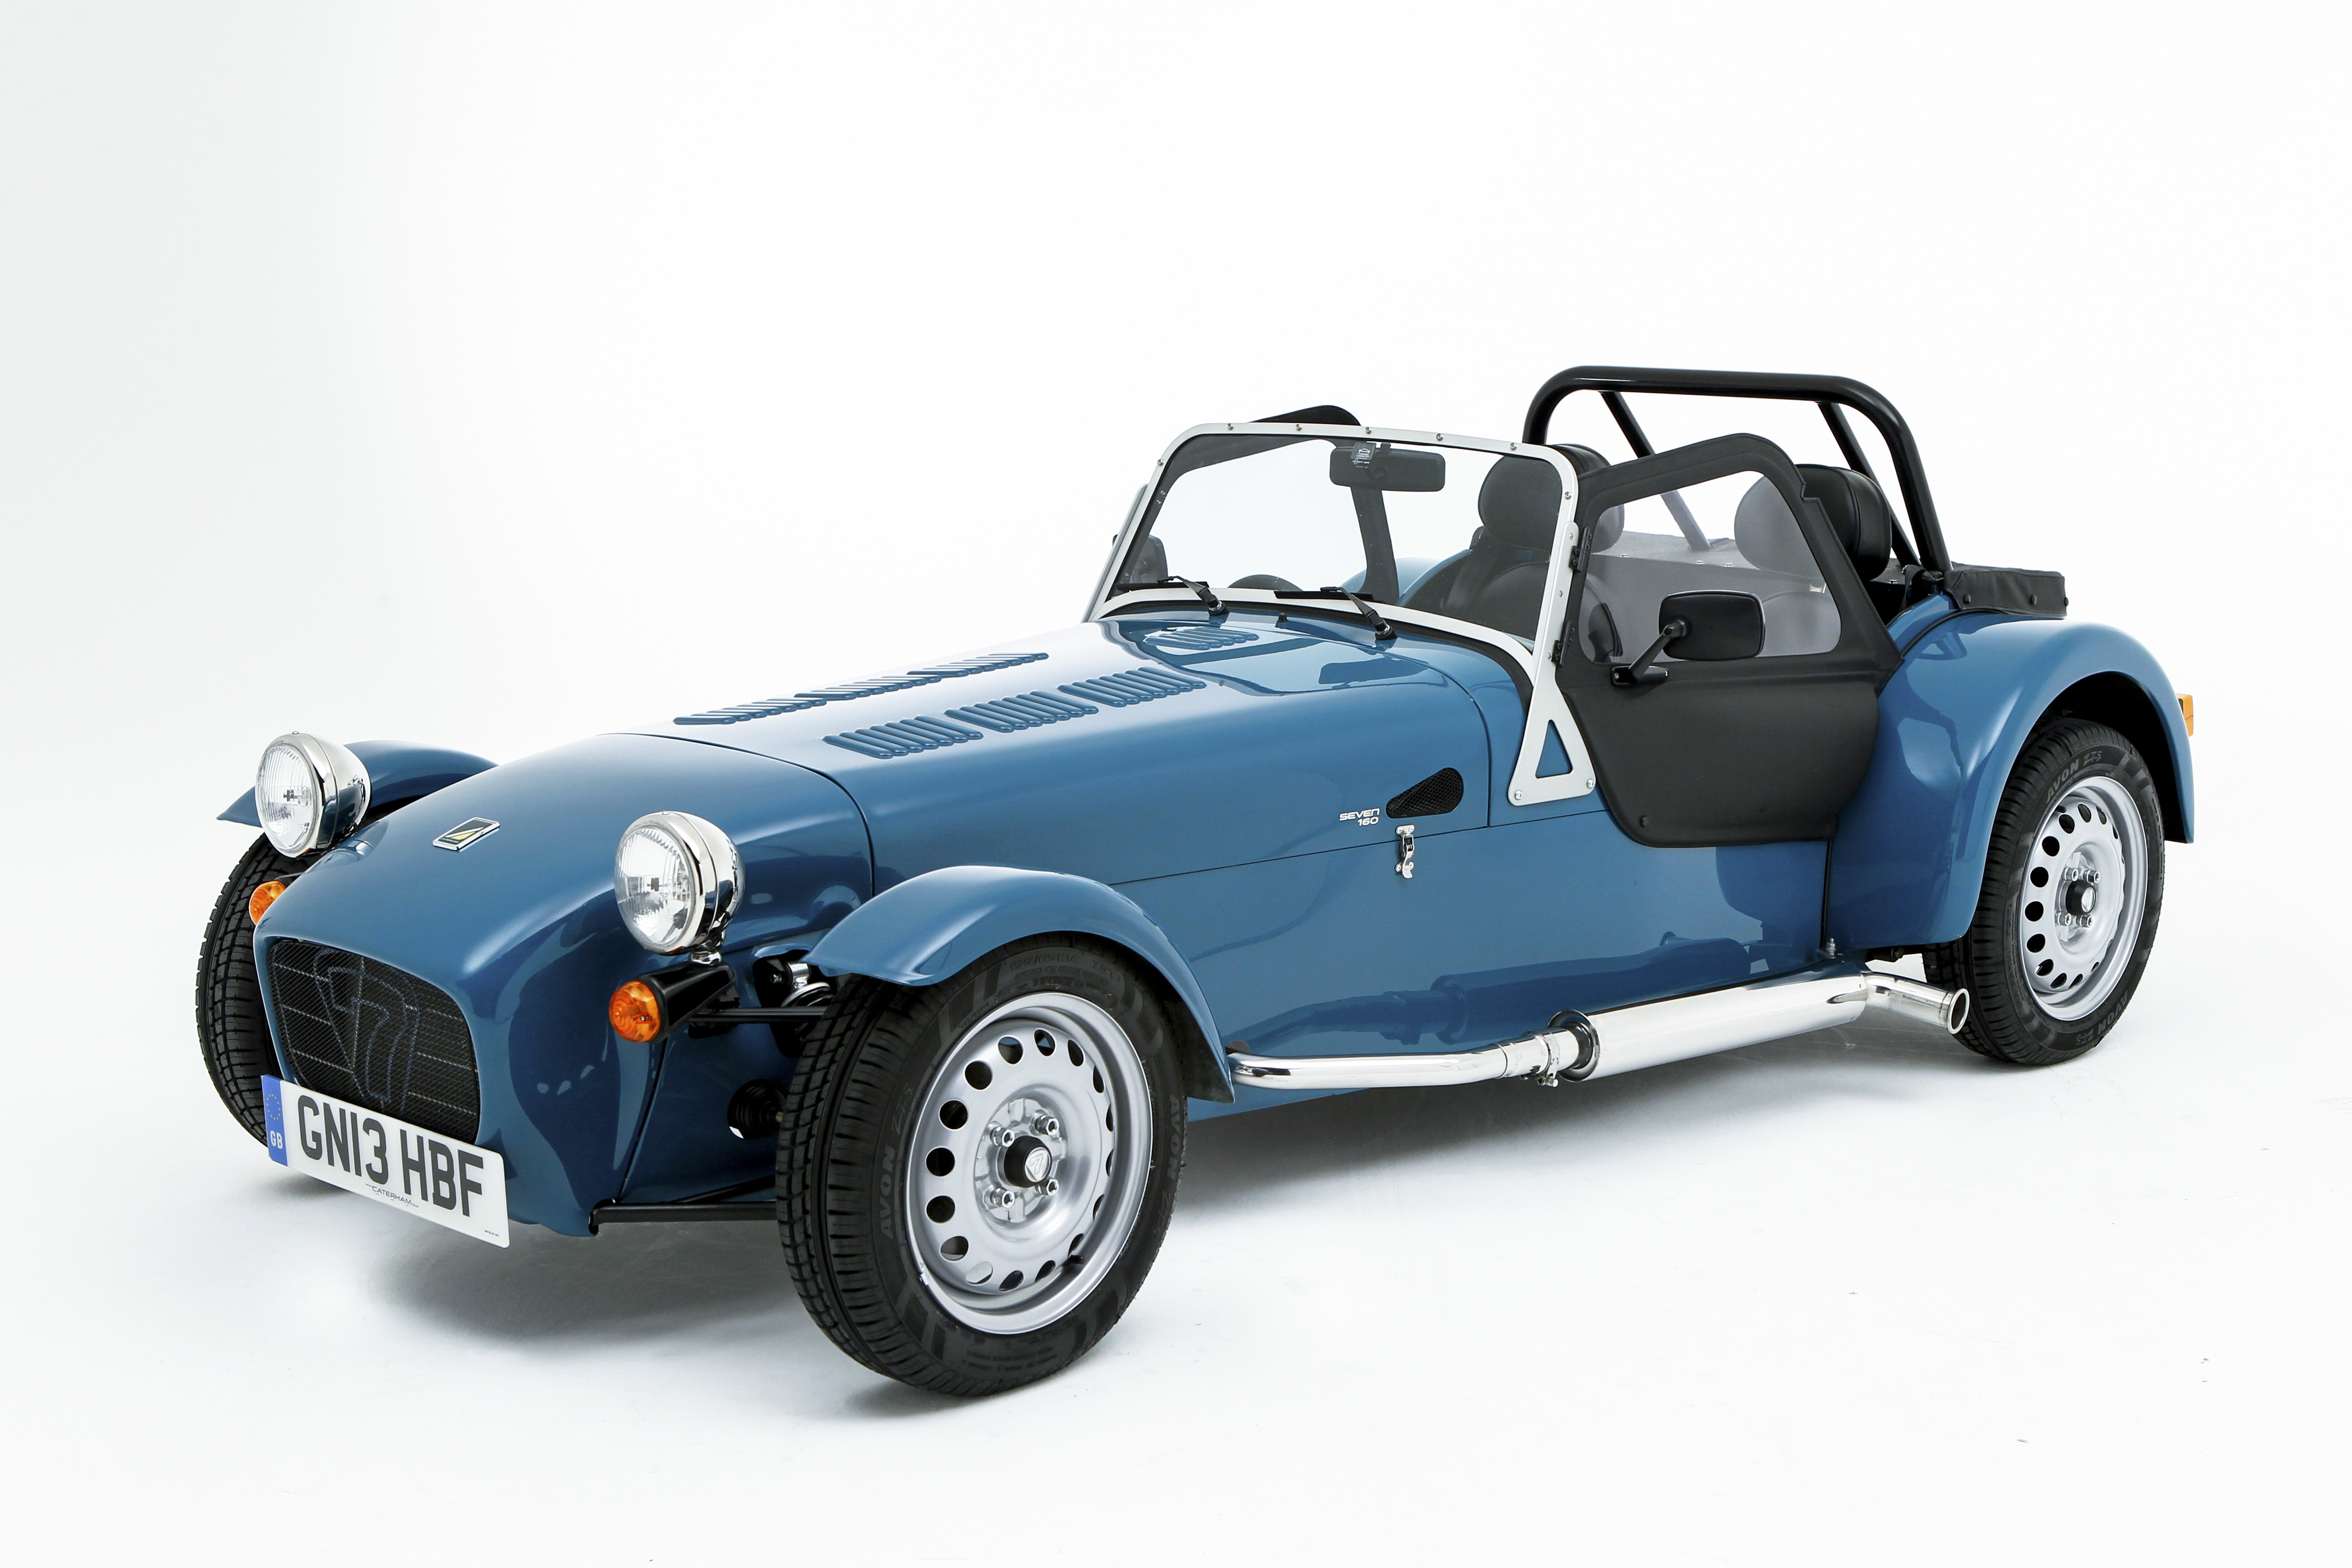 Caterham Seven 160 Holborn Studios, London N1 Oct 8th 2013  Photo - Jed Leicester Mb 07967 091226